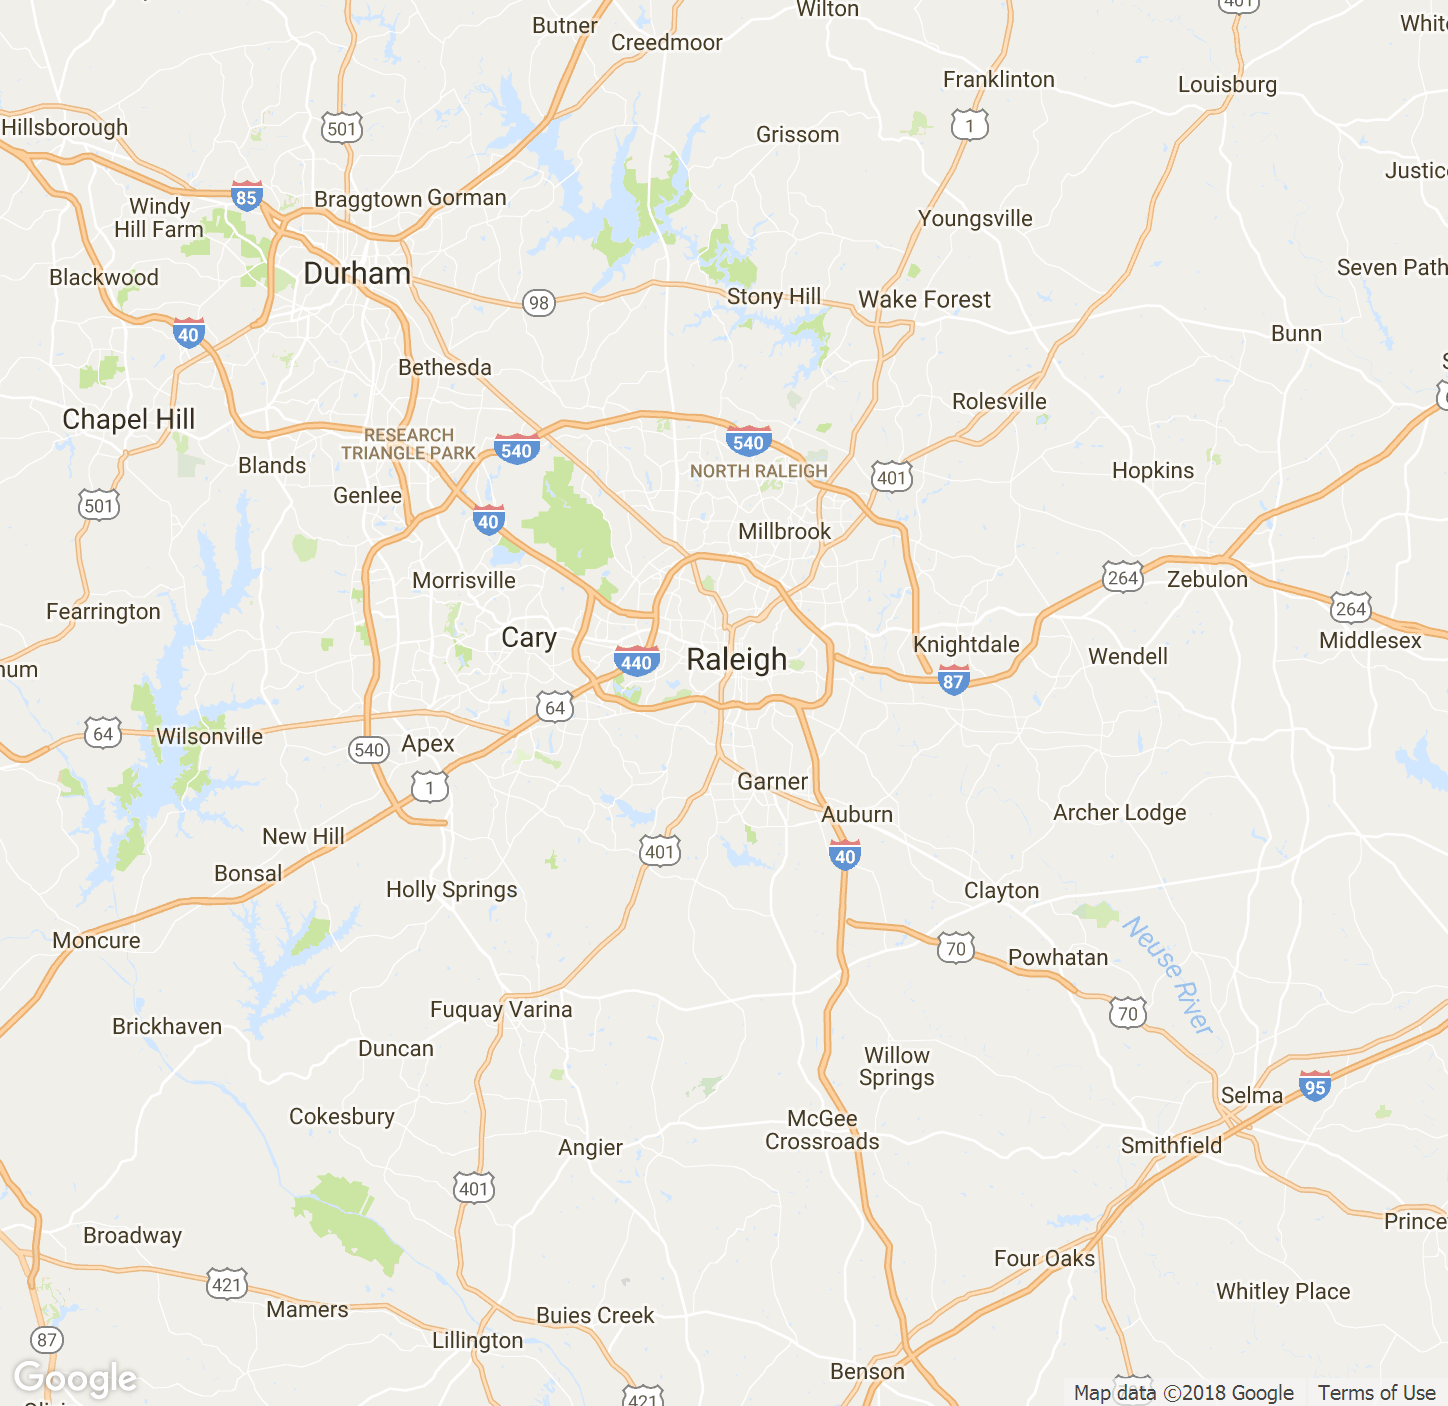 raleigh-nc-map - Blip Billboards